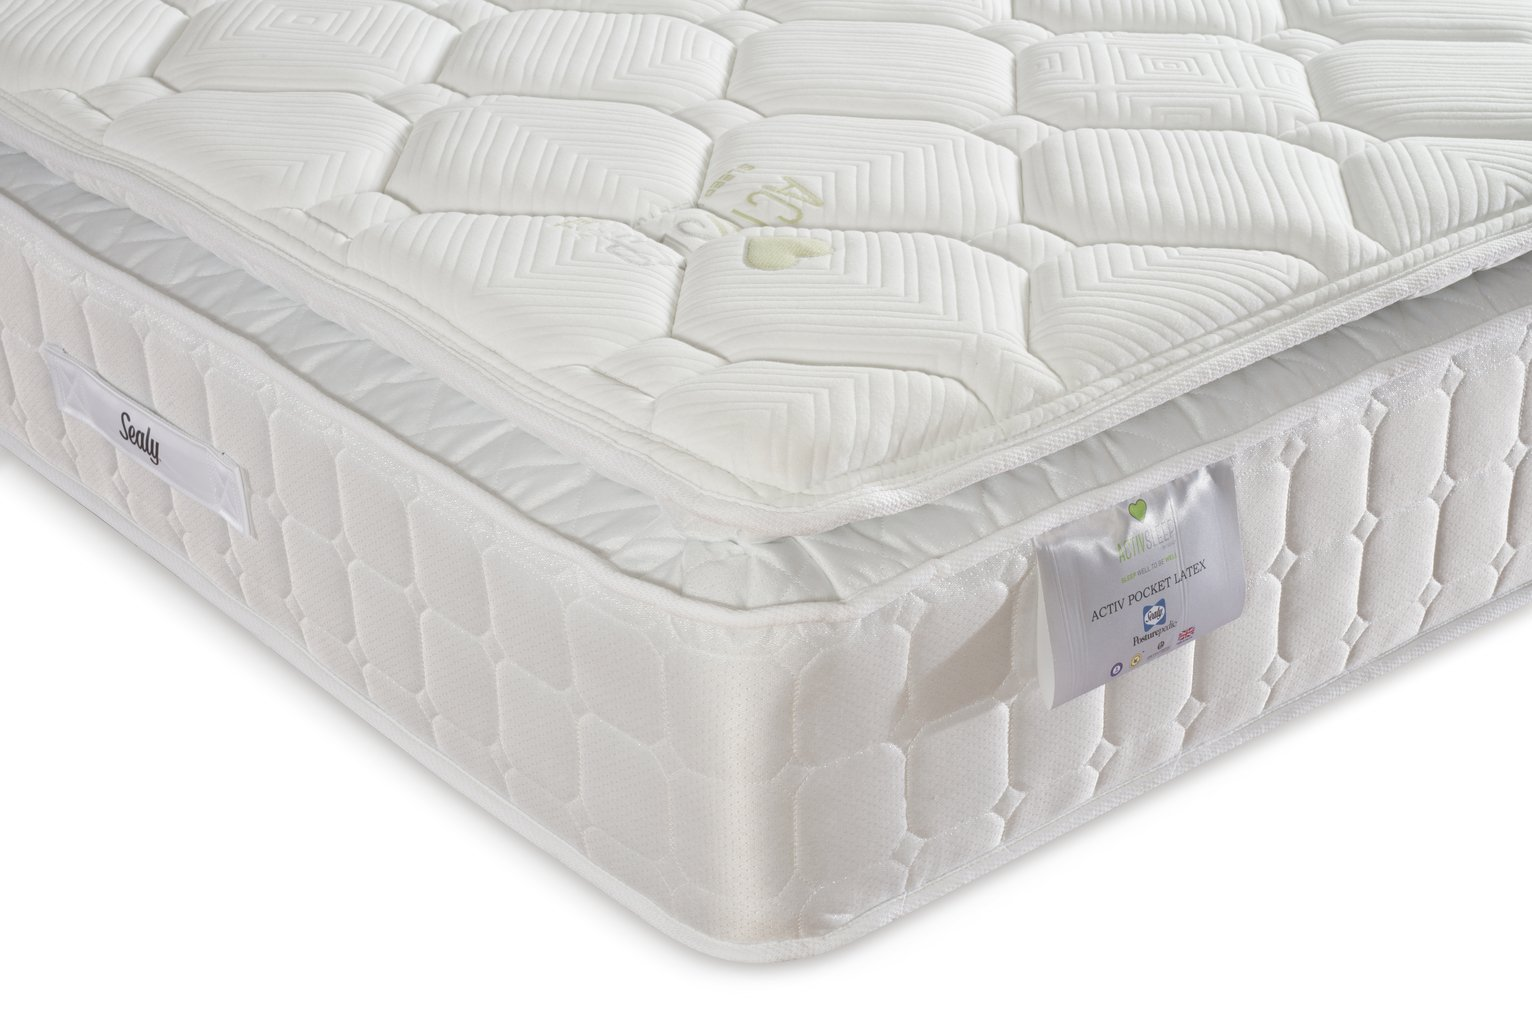 Sealy Posturepedic 1400 Latex Superking Mattress